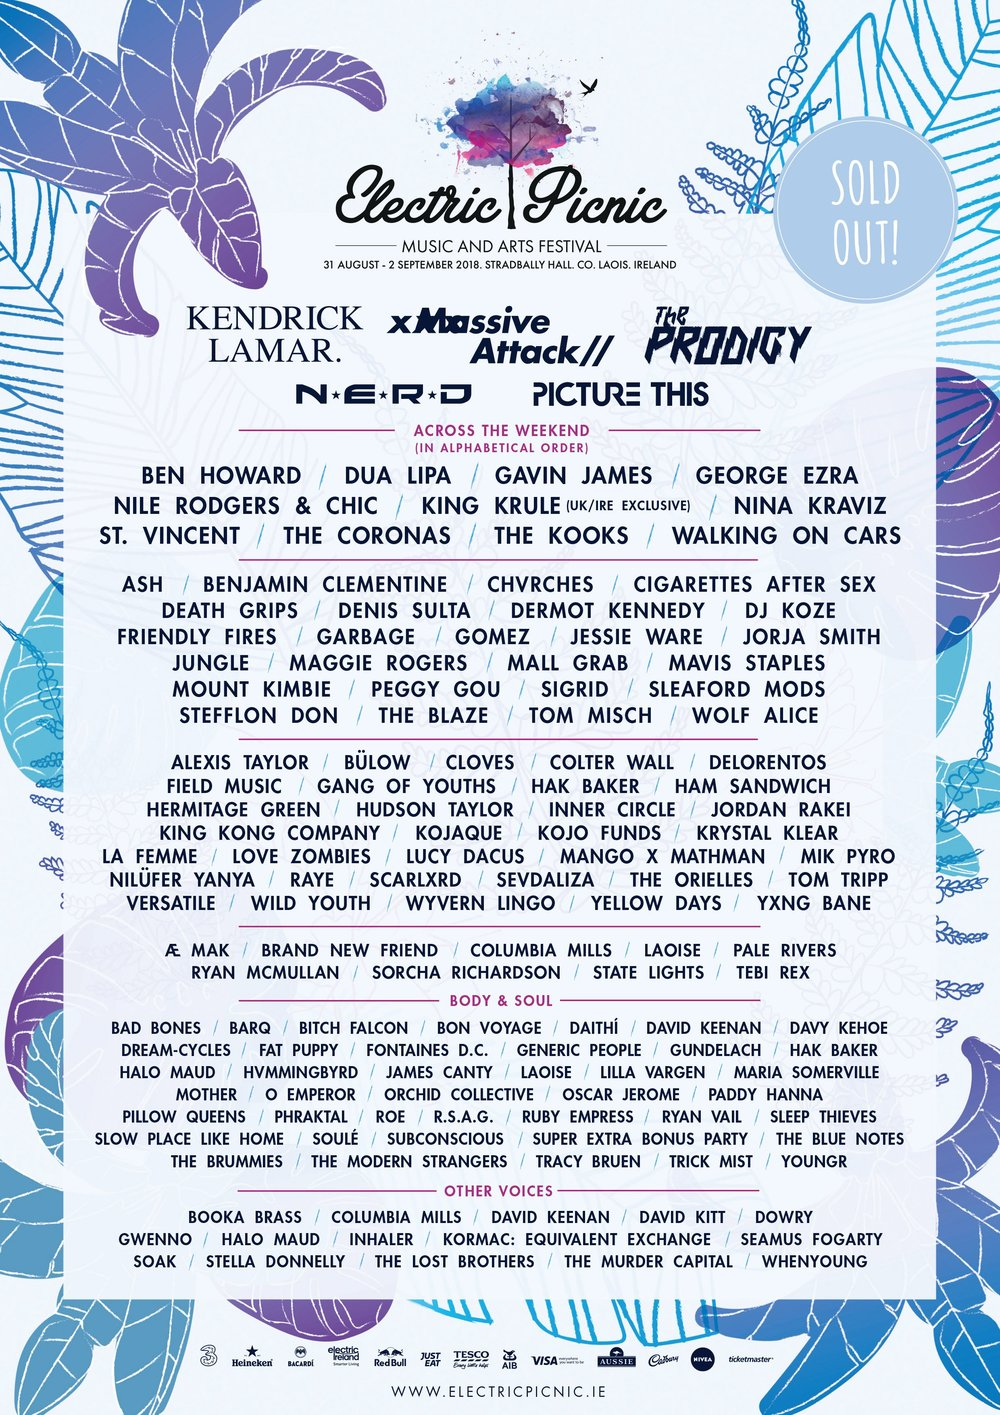 ELECTRIC PICNIC LINEUP